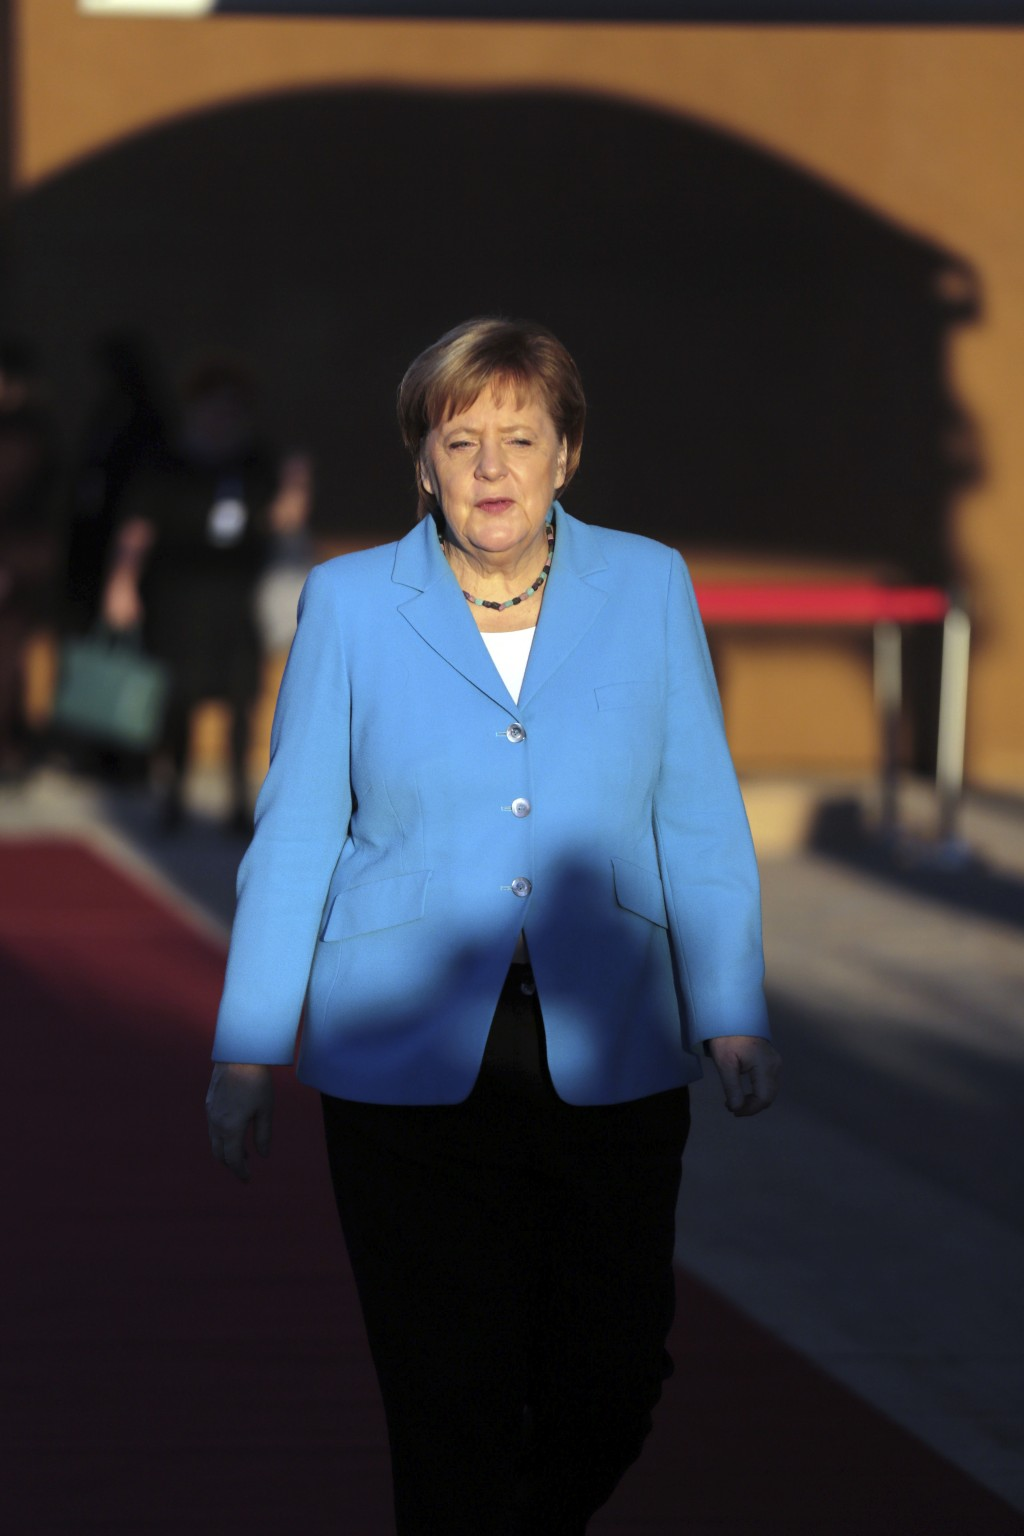 German Chancellor Angela Merkel arrives to attend a UN Migration Conference in Marrakech, Morocco, Monday, Dec.10, 2018. Top U.N. officials and govern...